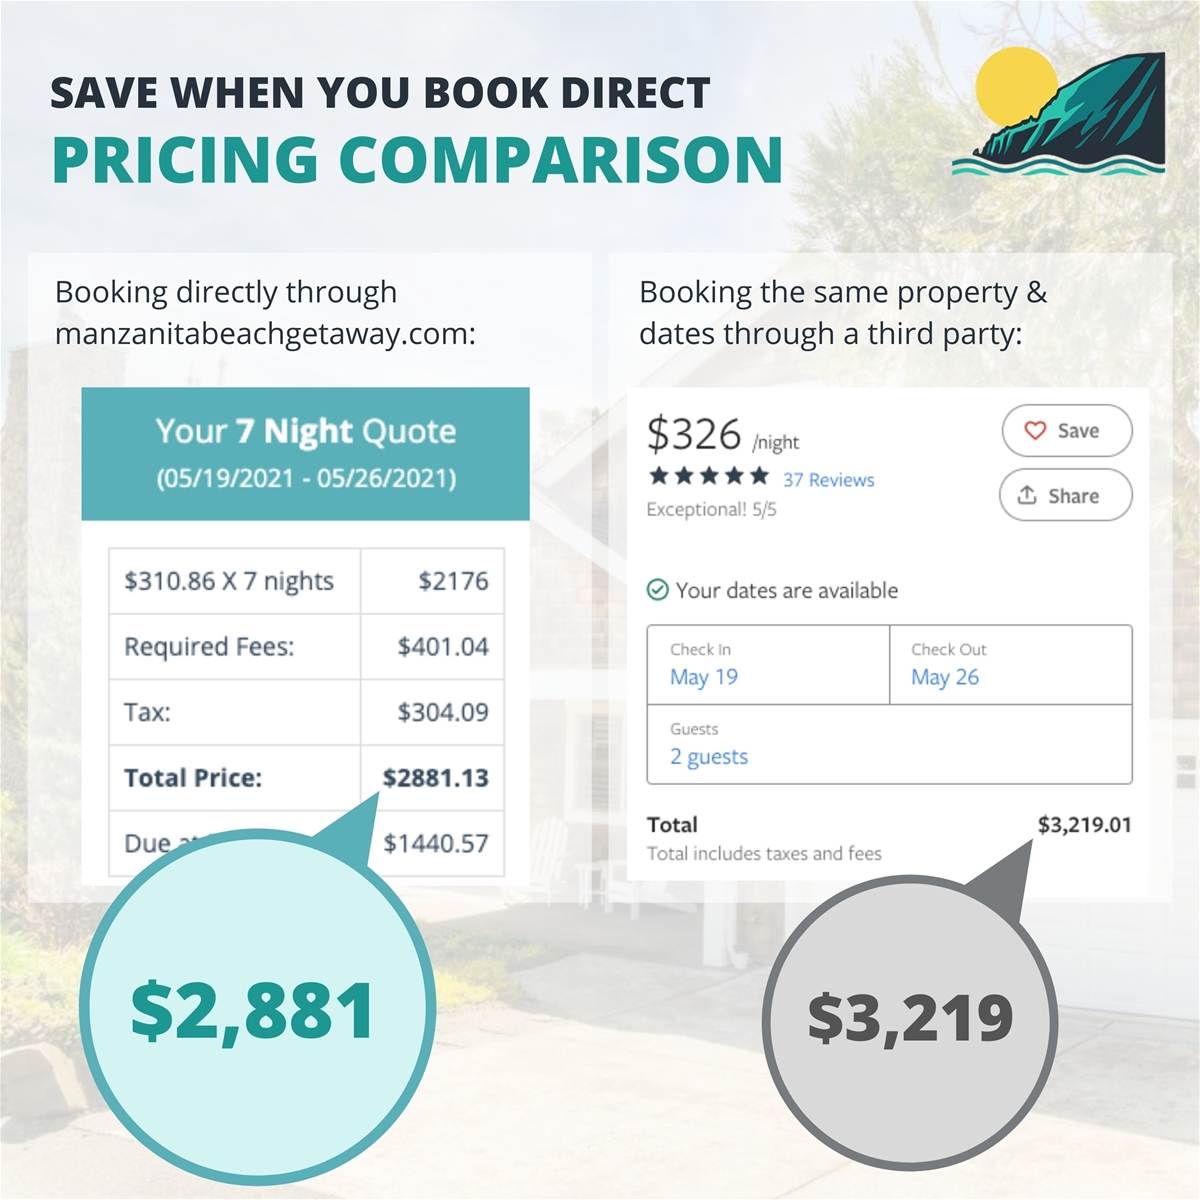 Pricing comparison of booking directly